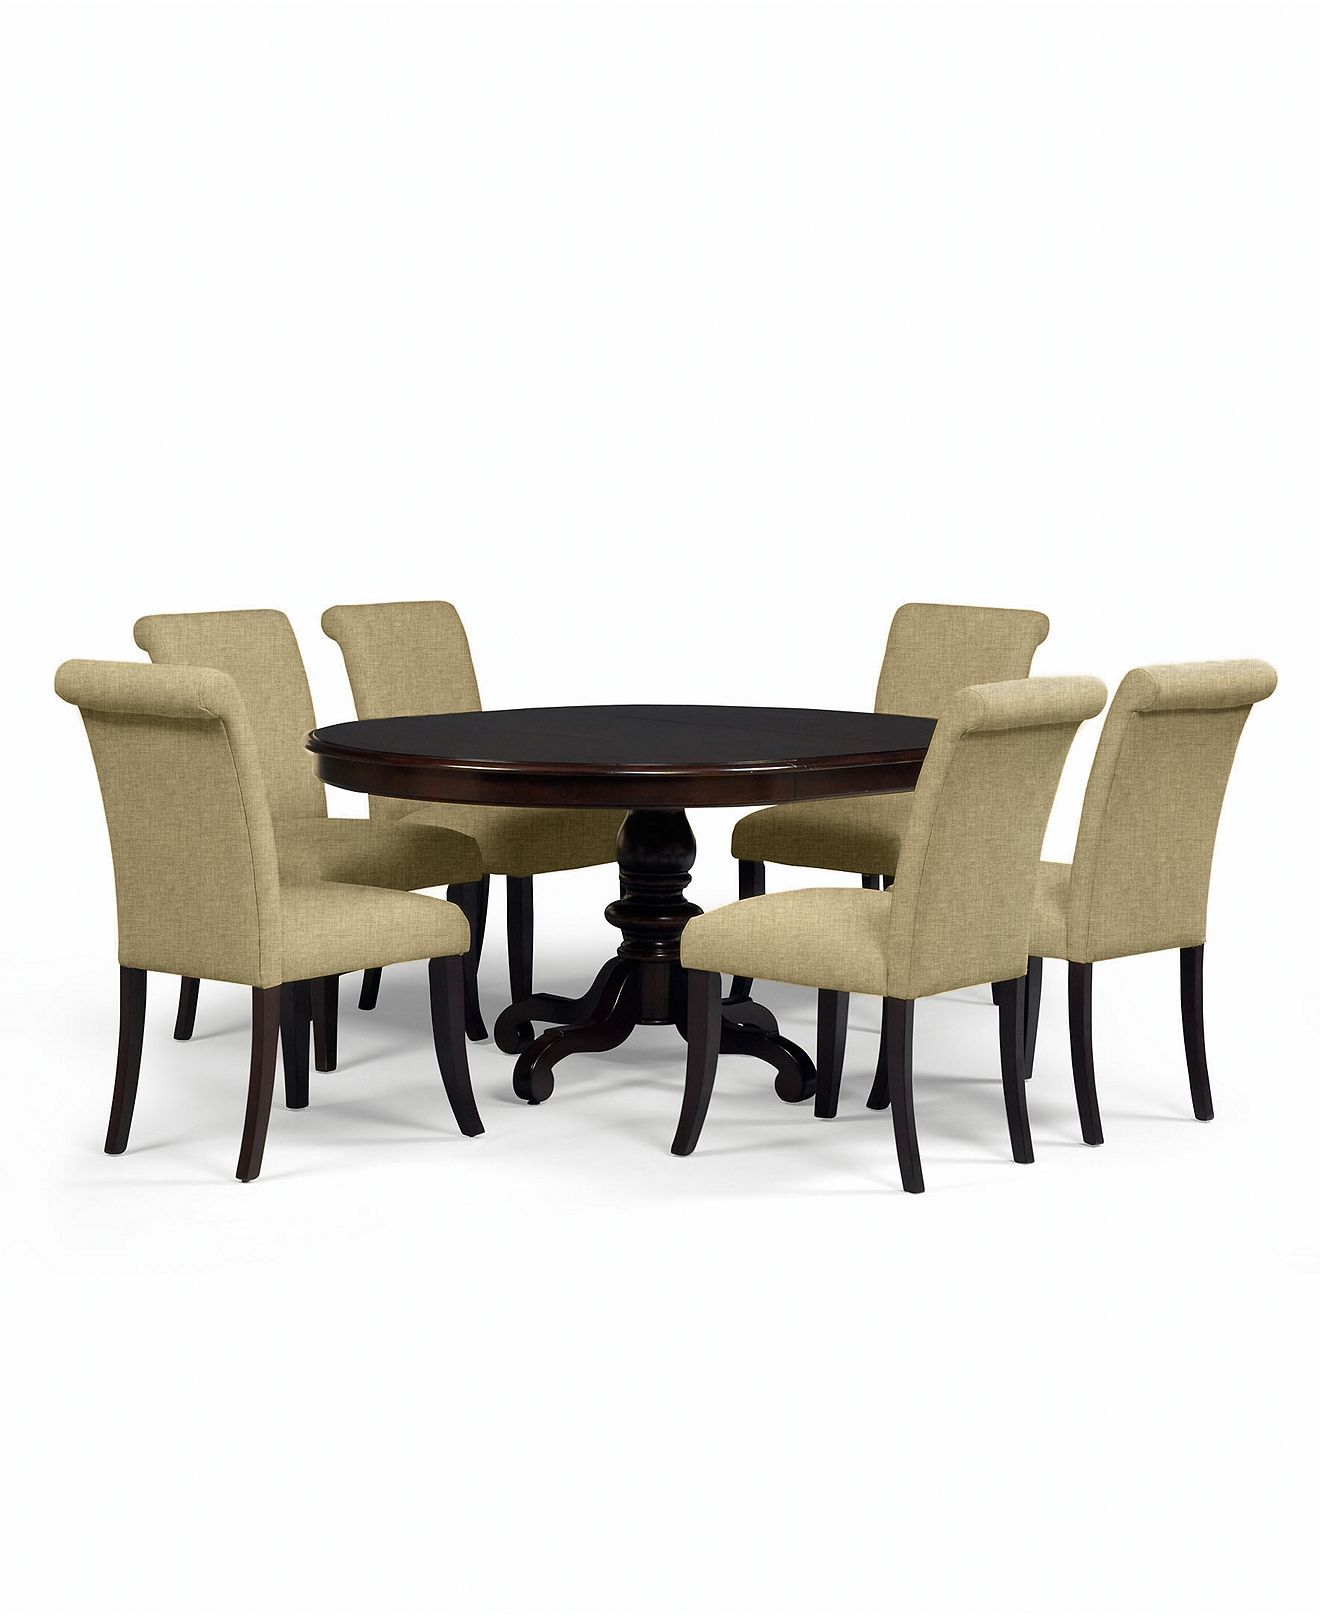 bradford dining room furniture, 7 piece dining set (round table